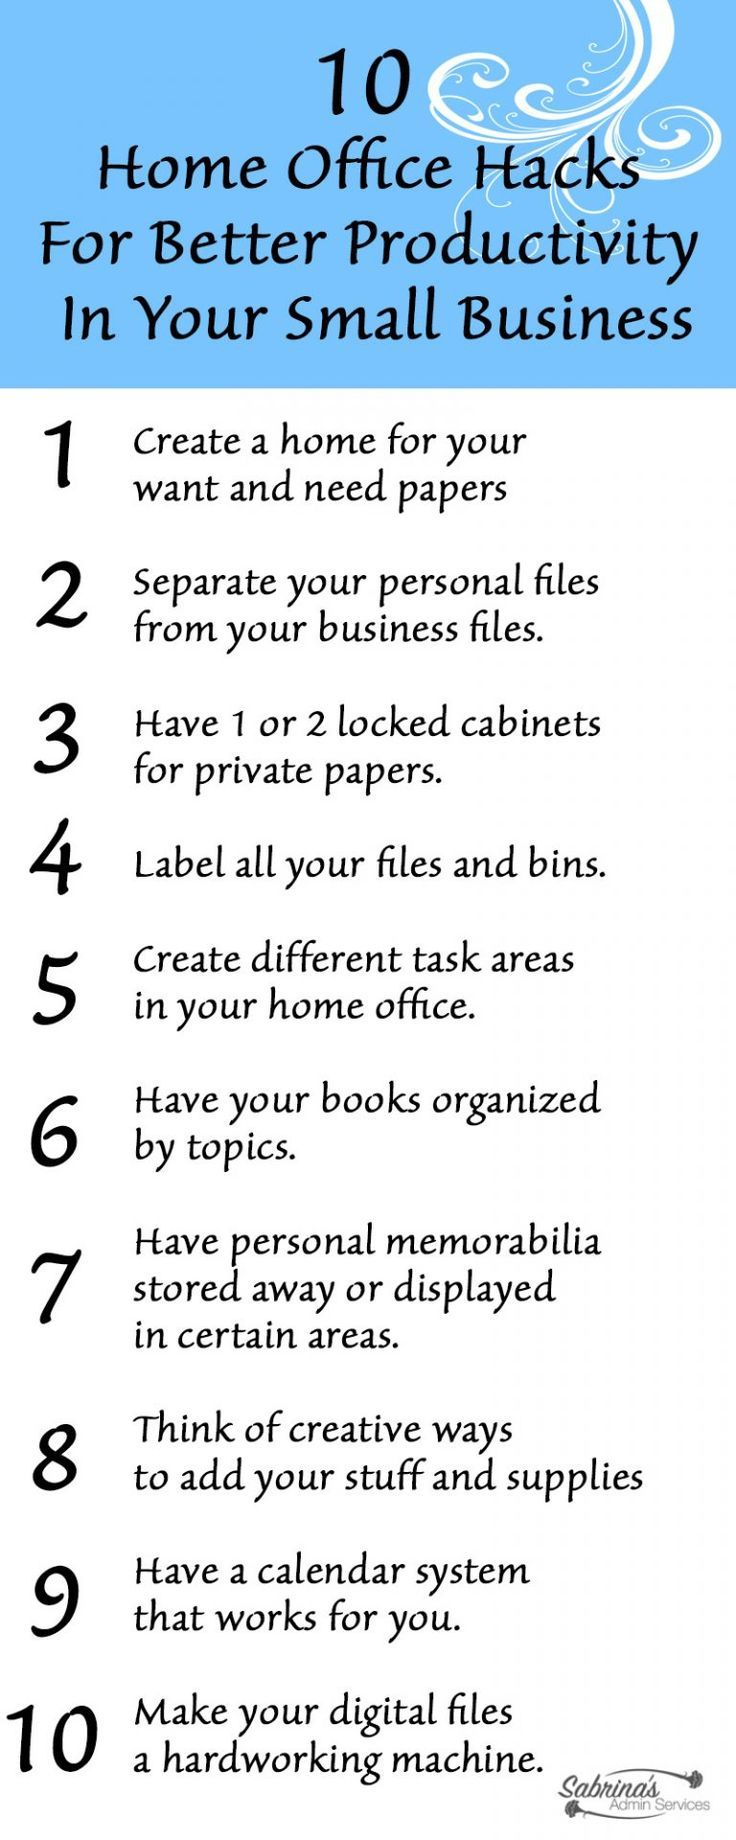 10 Home Office Hacks For Better Productivity In Your Small Business ...